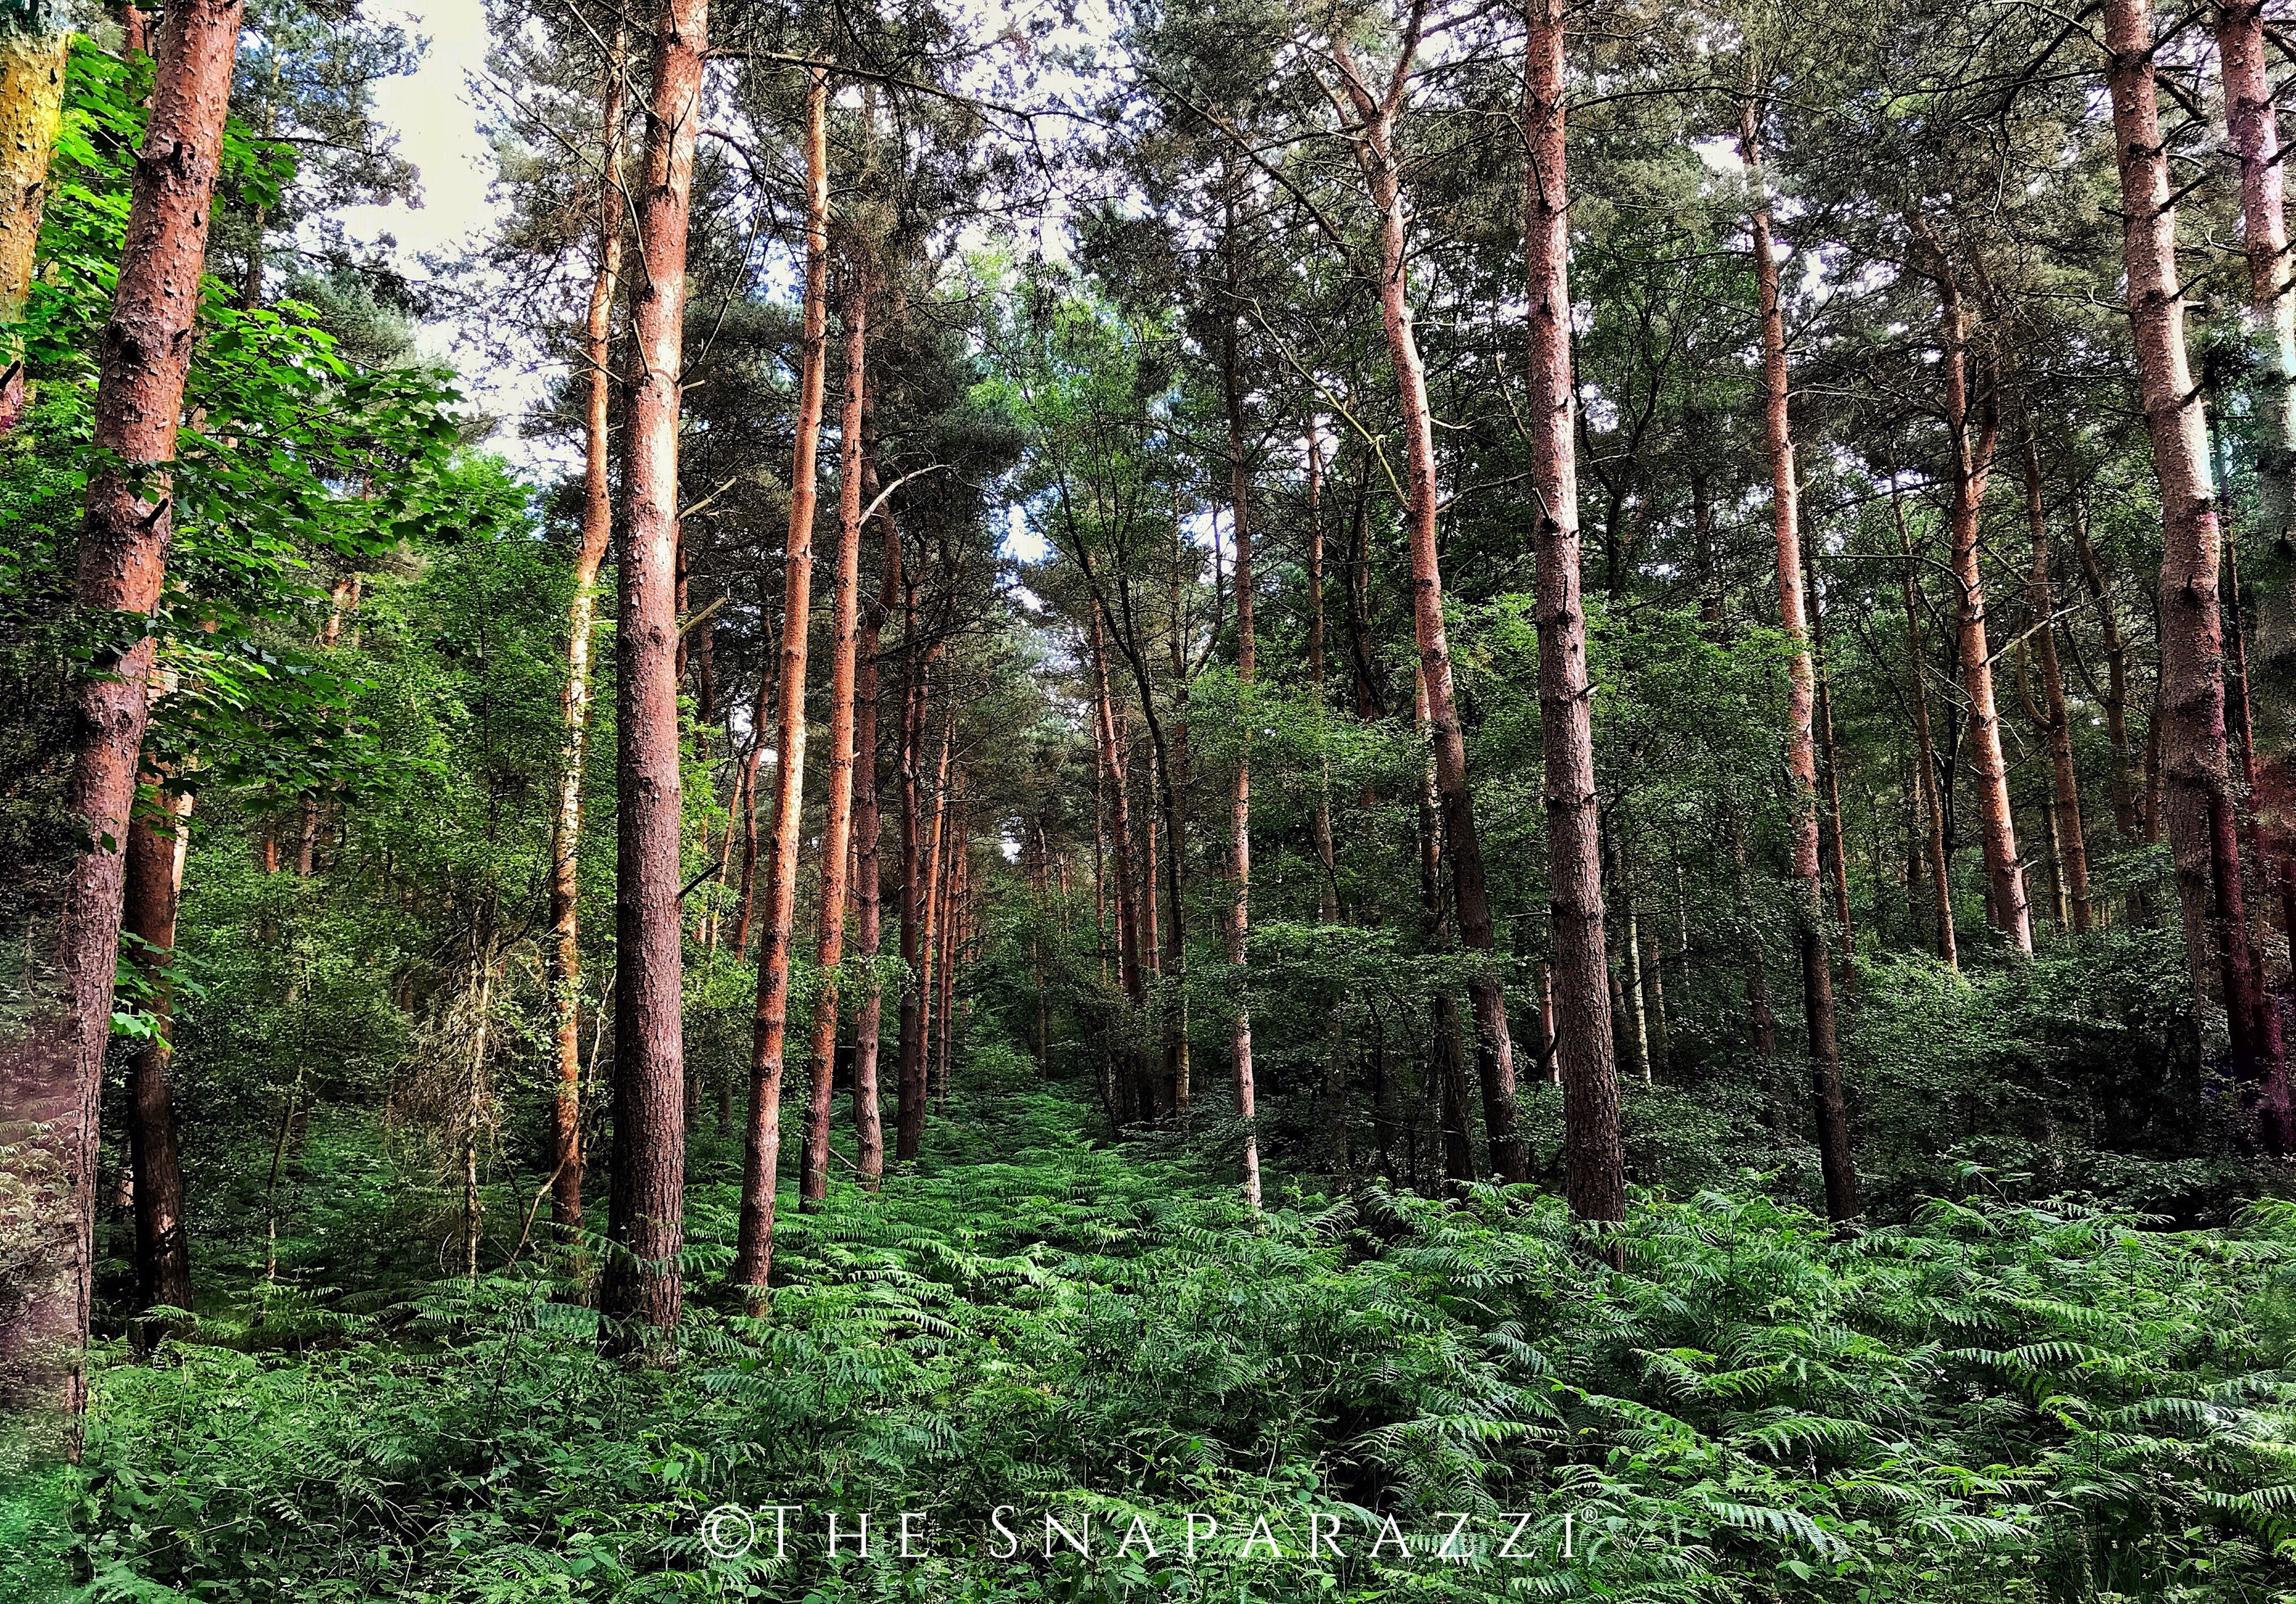 forest, tree, nature, growth, tranquility, tree trunk, no people, beauty in nature, tranquil scene, non-urban scene, scenics, day, outdoors, green color, landscape